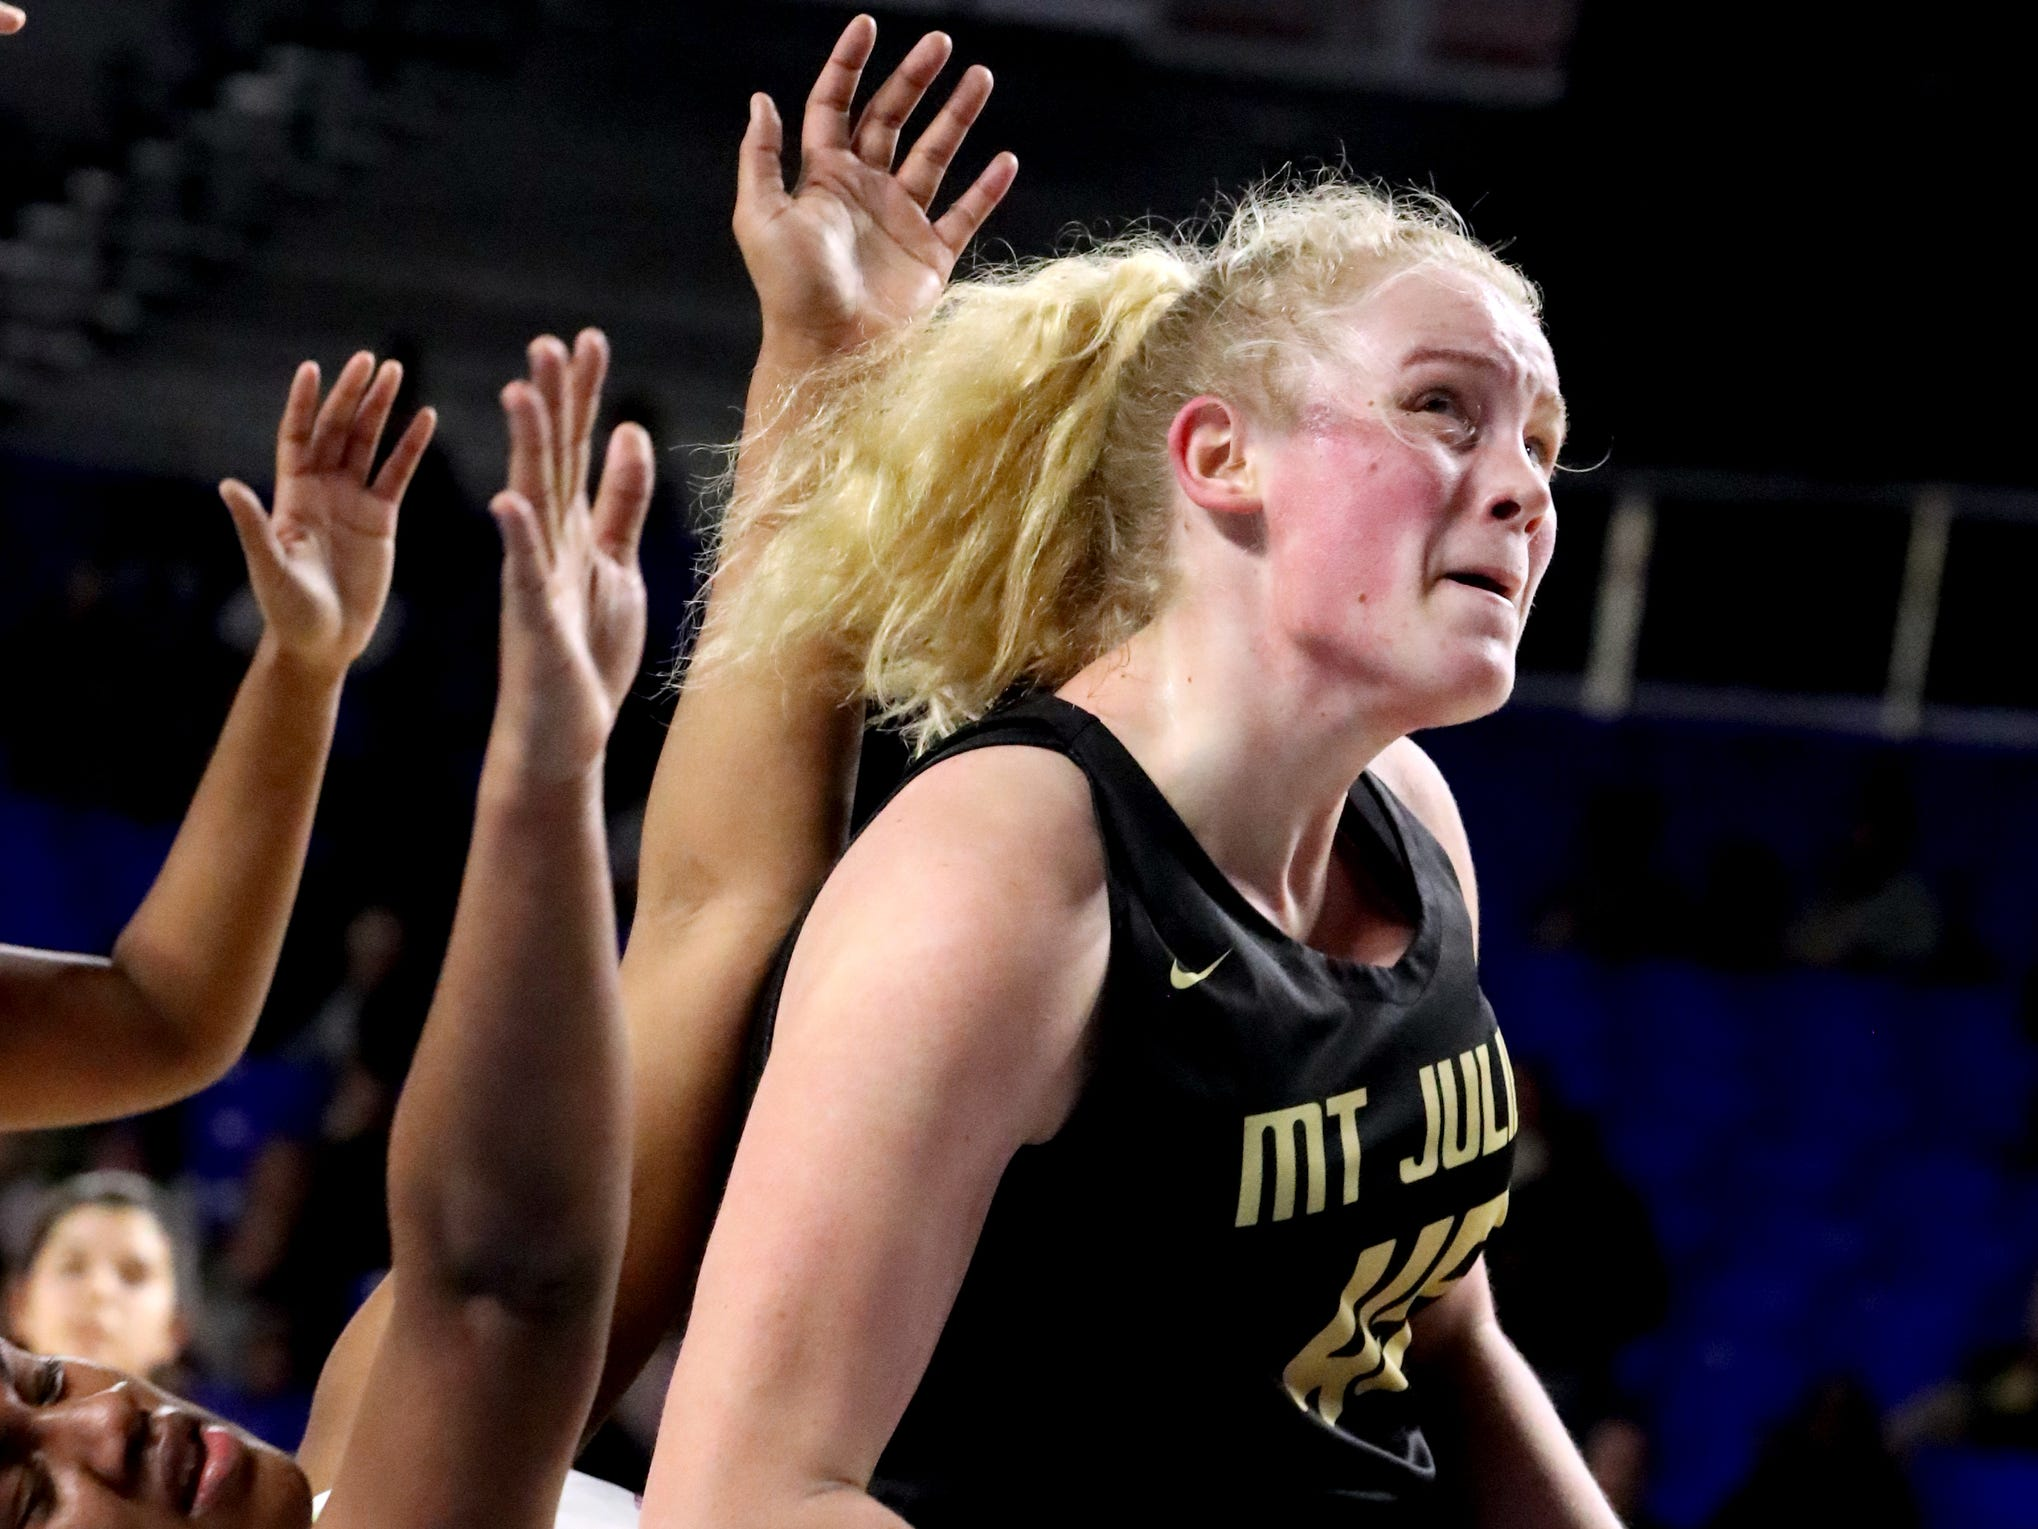 Mt. Juliet's Emma Palmer (45) pushes to the basket as Houston's Melisa Carter (33) falls during the quarterfinal round of the TSSAA Div. 1 Class AAA Girls State Tournament, on Wednesday, March 6, 2019, at Murphy Center in Murfreesboro, Tenn.